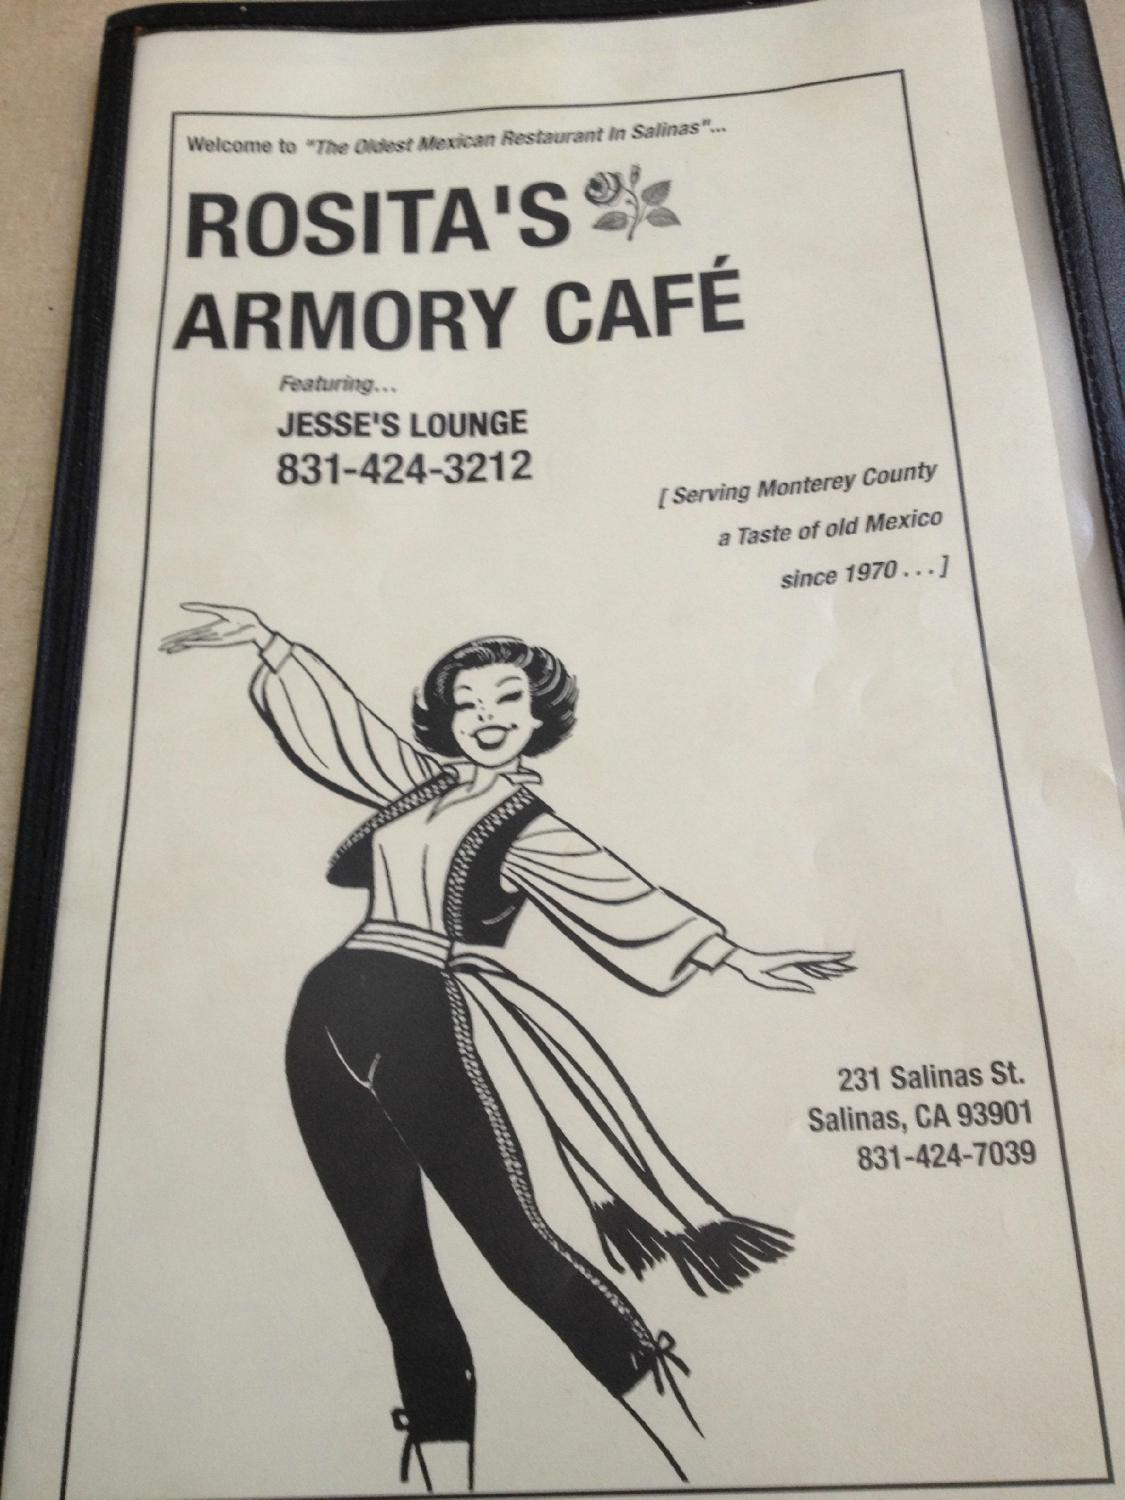 Rosita's Armory Cafe